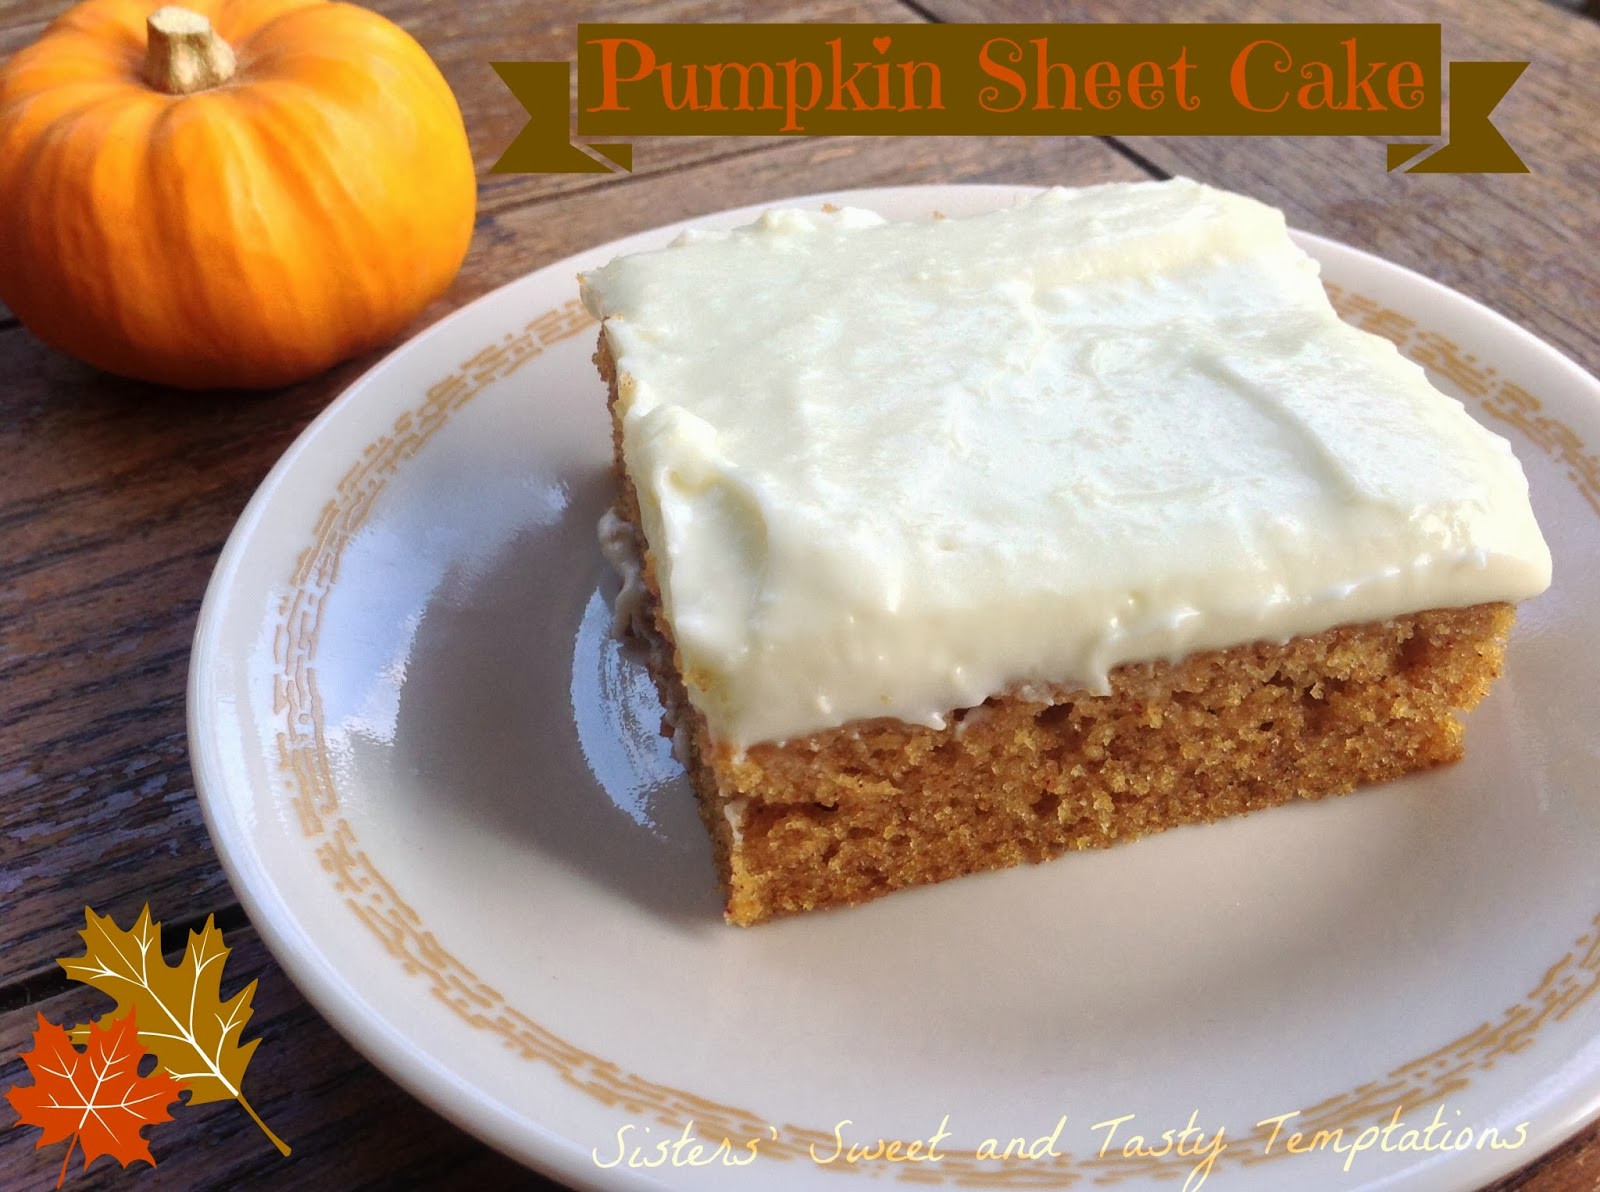 Pumpkin Sheet Cake  Sisters Sweet and Tasty Temptations Pumpkin Sheet Cake